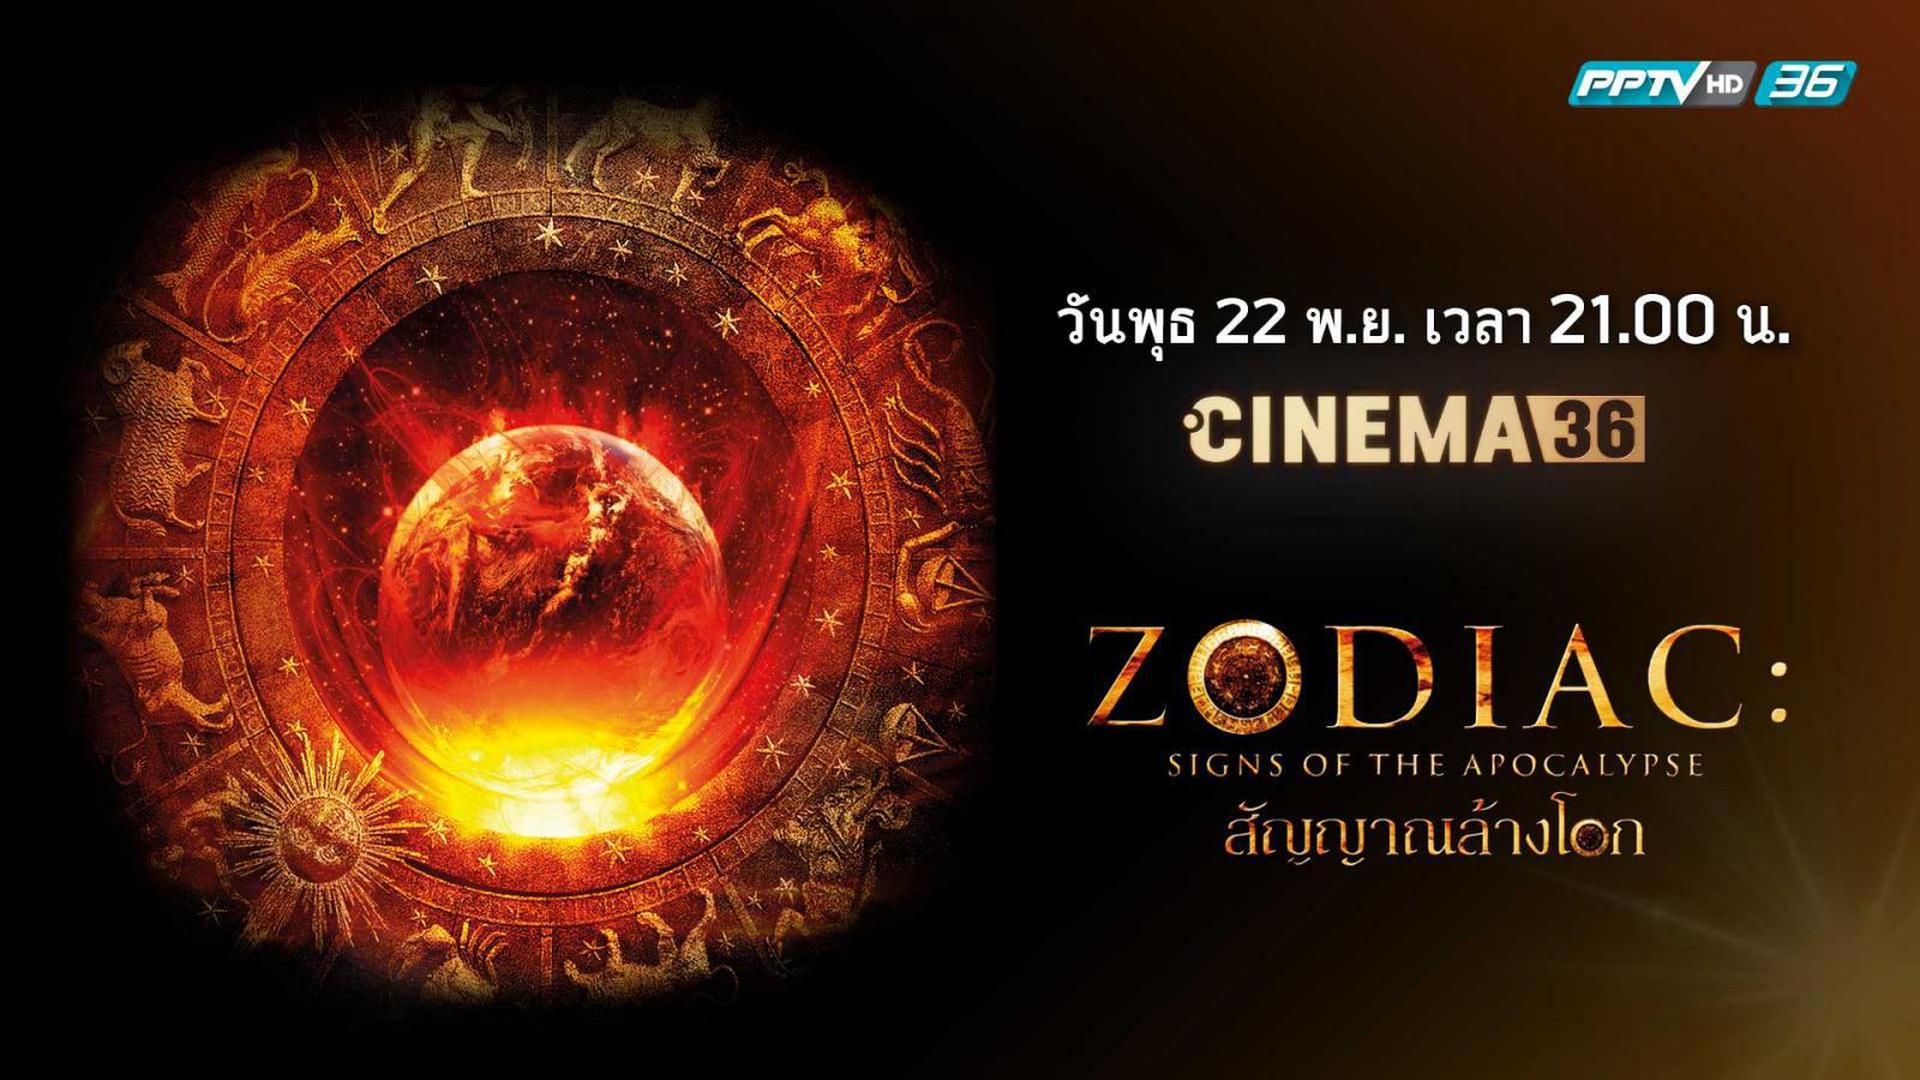 Zodiac : Signs Of The Apocalypse สัญญาณล้างโลก